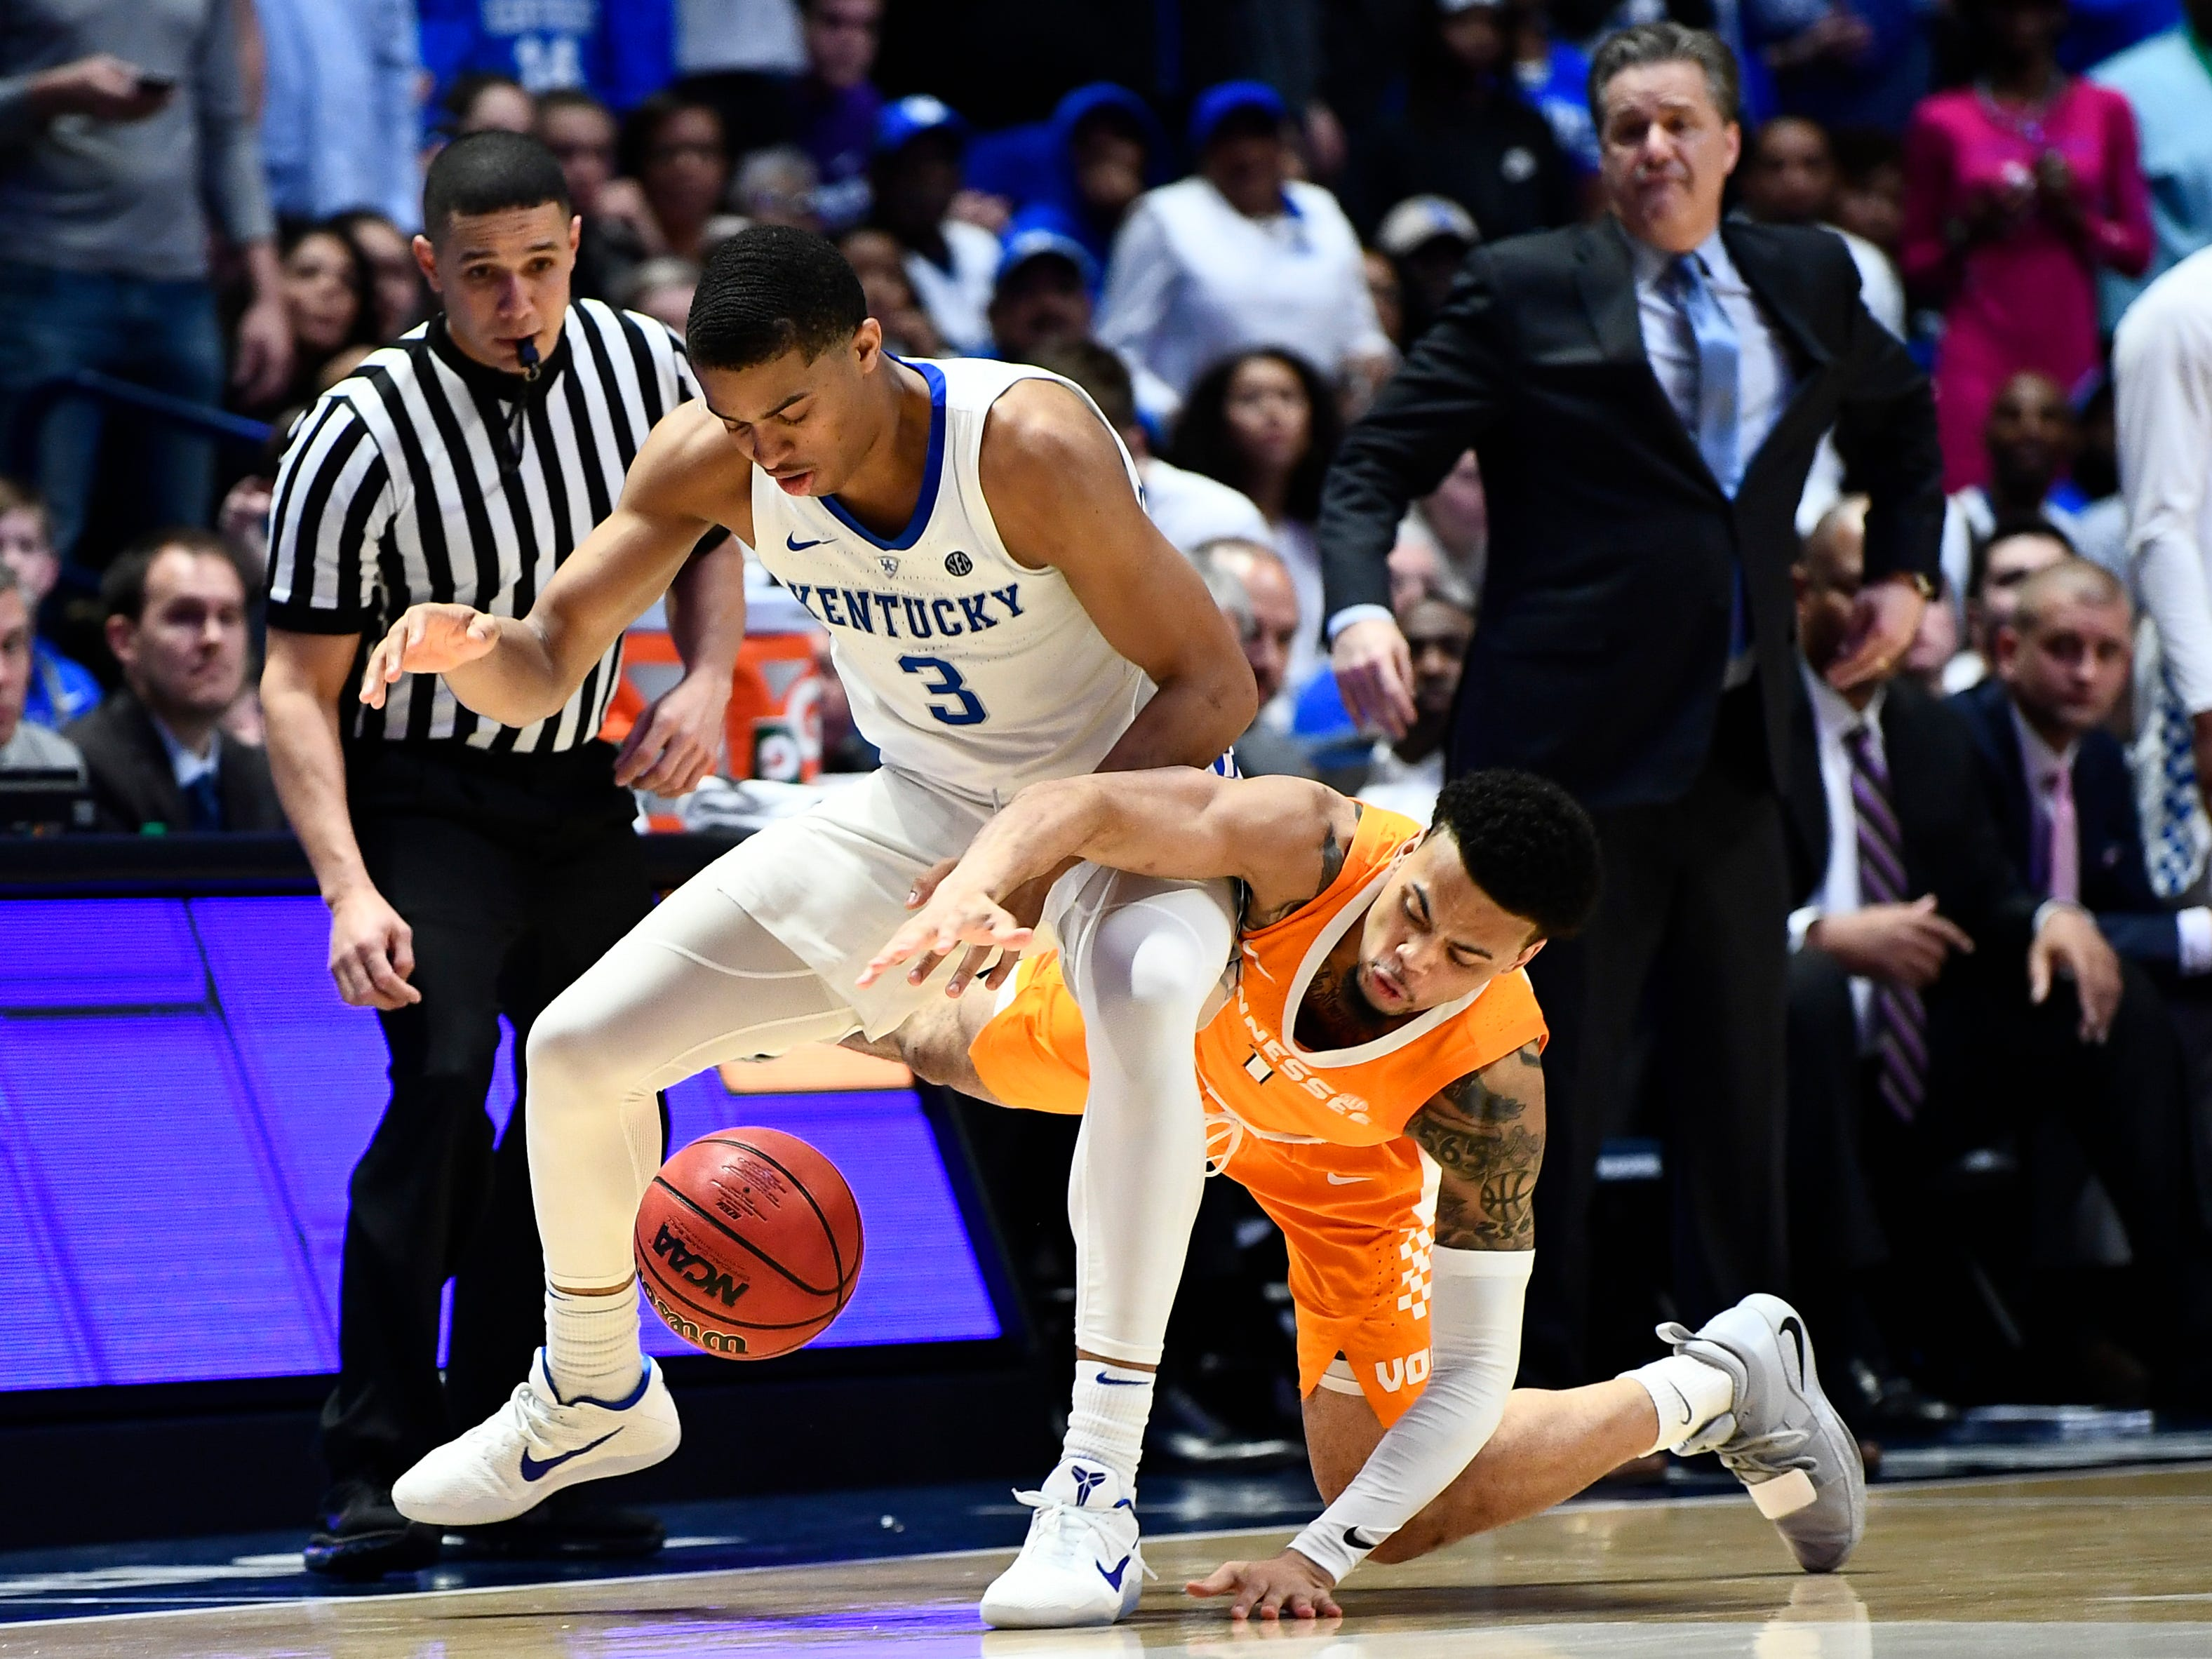 Tennessee guard Lamonte Turner (1) and Kentucky guard Keldon Johnson (3) fight for a loose ball in the last minute of Tennessee's game against Kentucky in the SEC Tournament held at Bridgestone Arena in Nashville on Saturday, March 16, 2019.